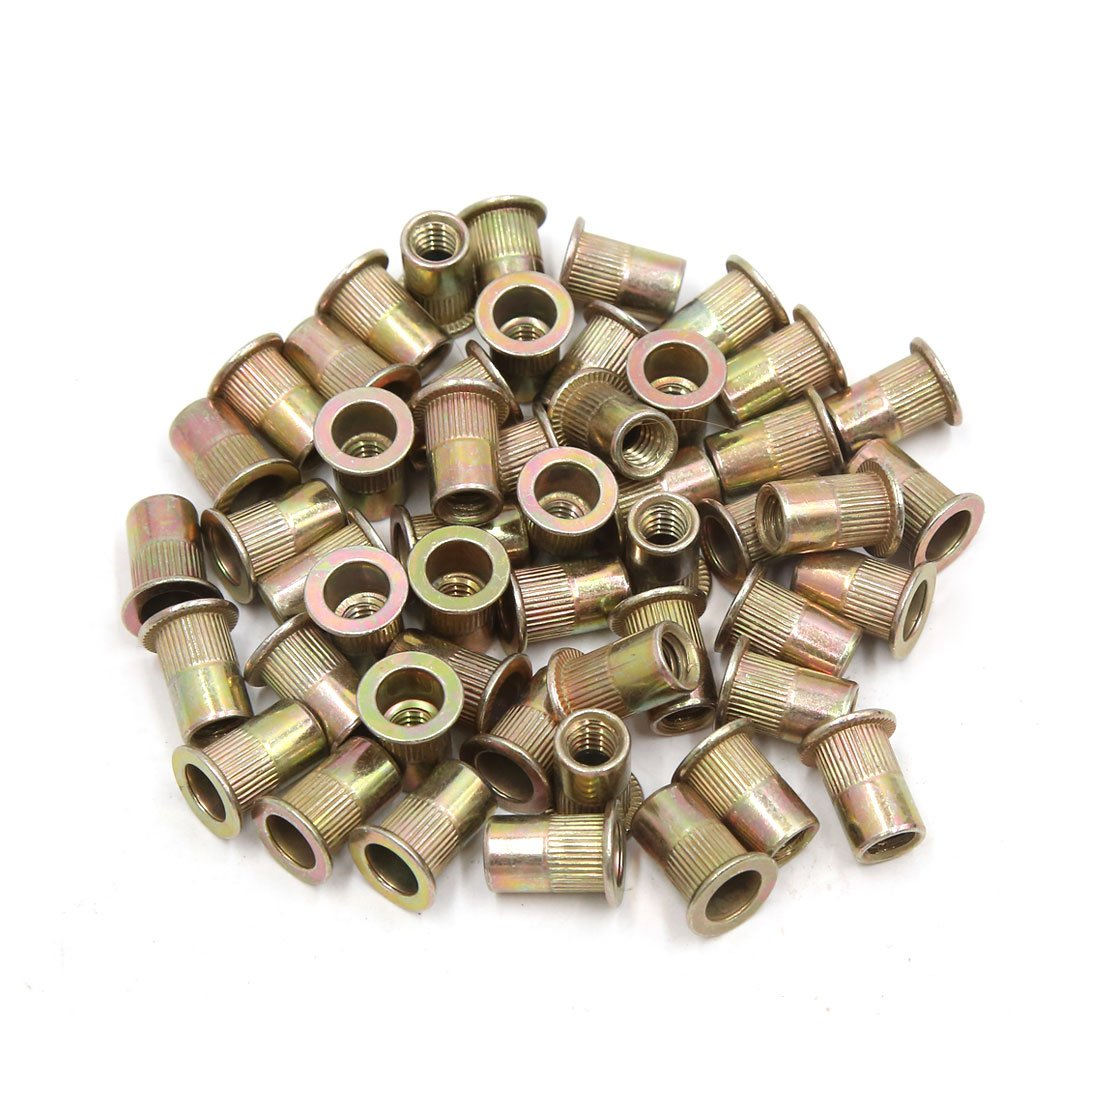 uxcell a17052300ux0571 50Pcs Copper Tone Metal 1/4-20 UNC Rivet Nut Flat Head Insert Nutsert for Car, 50 Pack Unknown